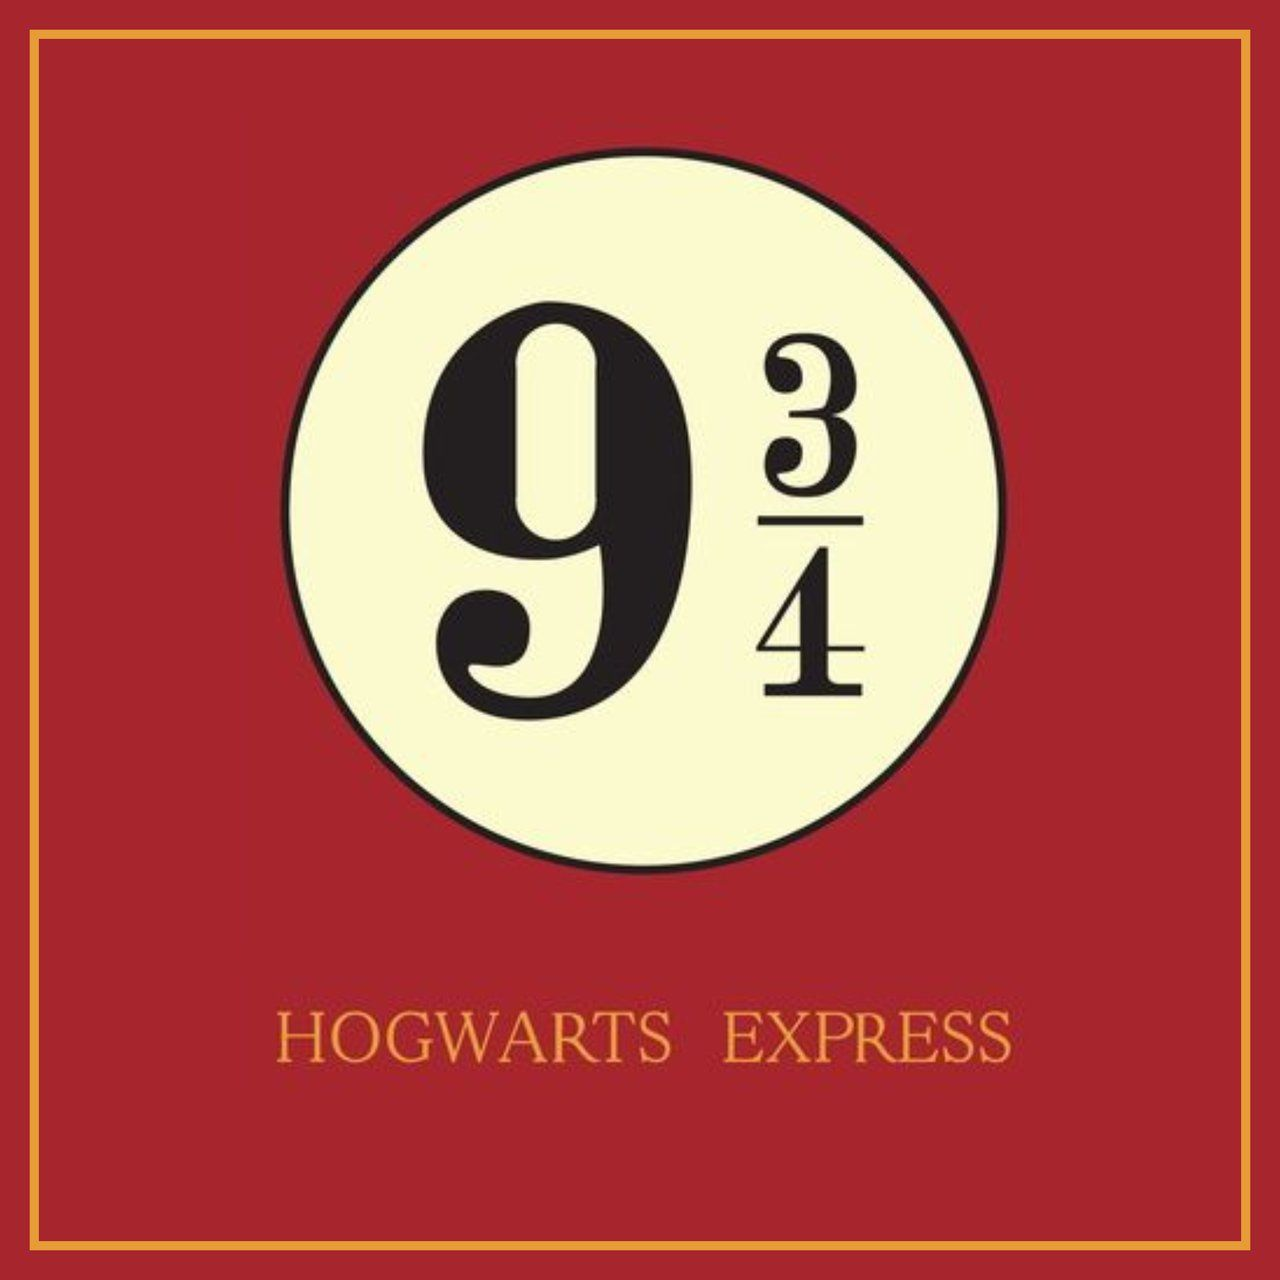 Quadro Hogwarts Express 9 3/4: Harry Potter - Wall